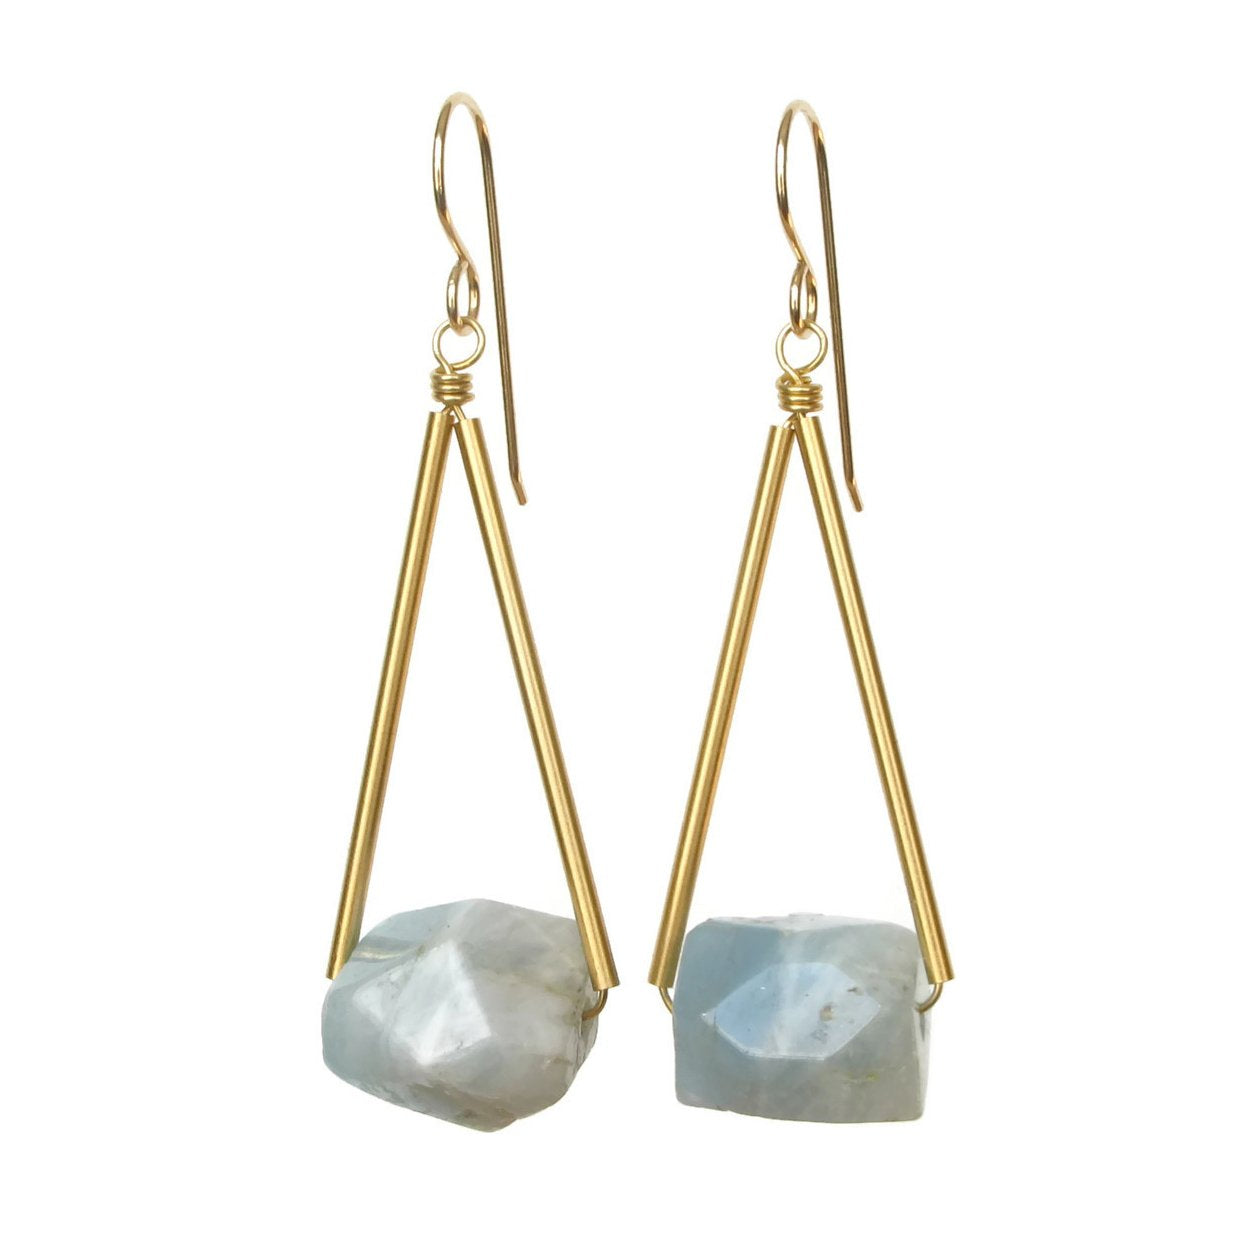 Sana Earrings - Aquamarine